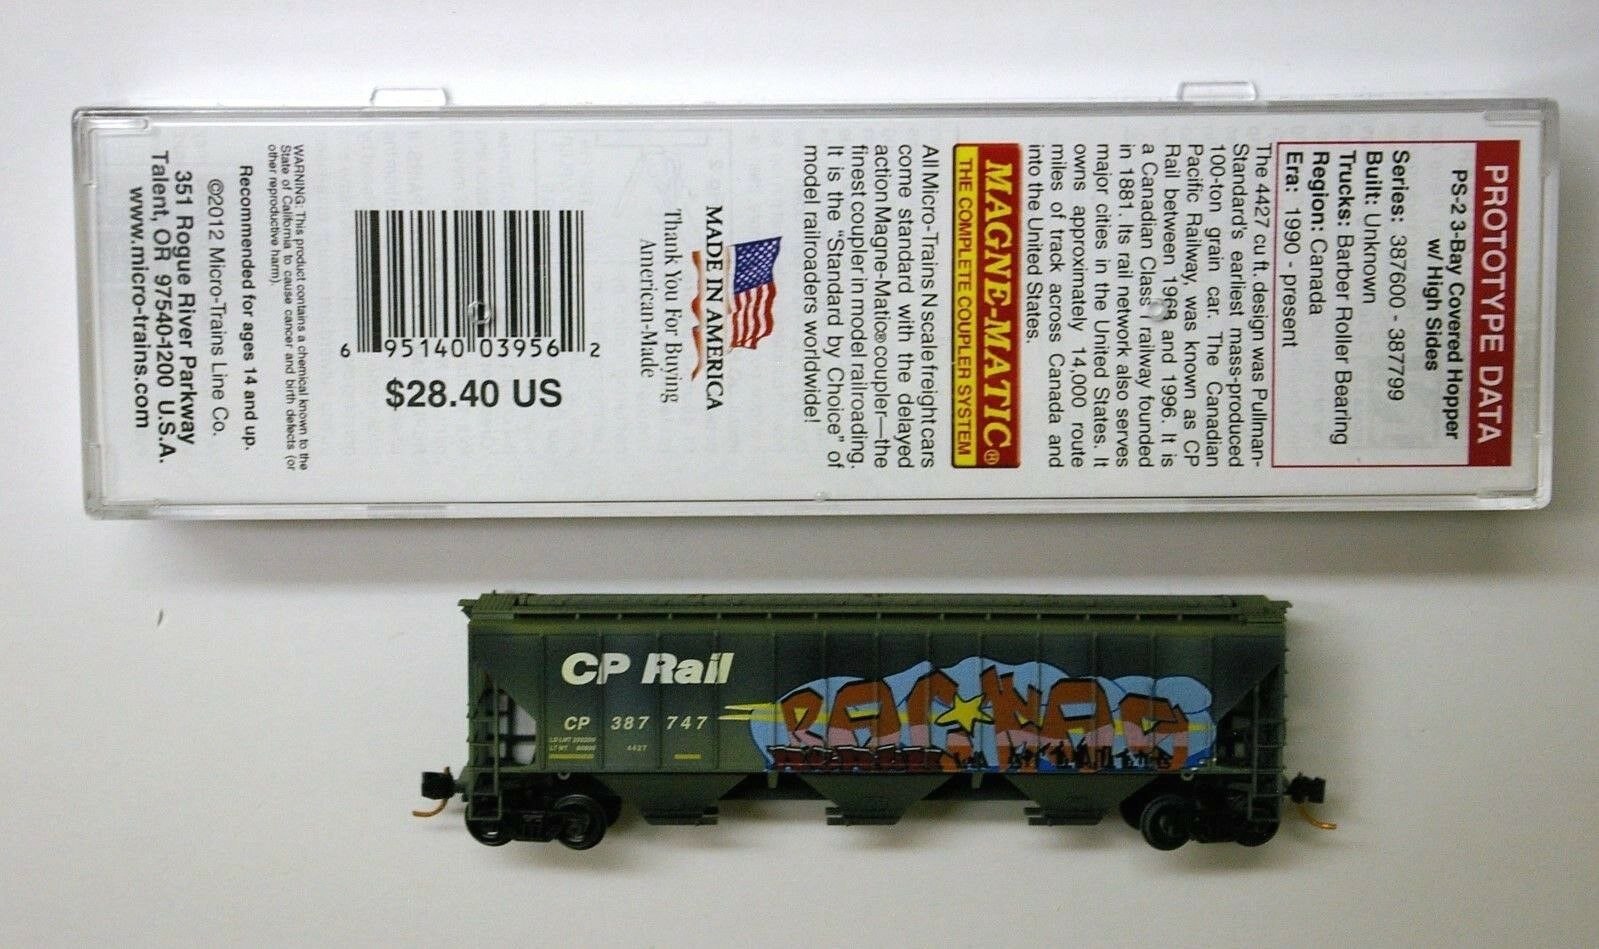 MTL Micro-Trains 96060 CP Rail CP 387747 FW Factory Weathered